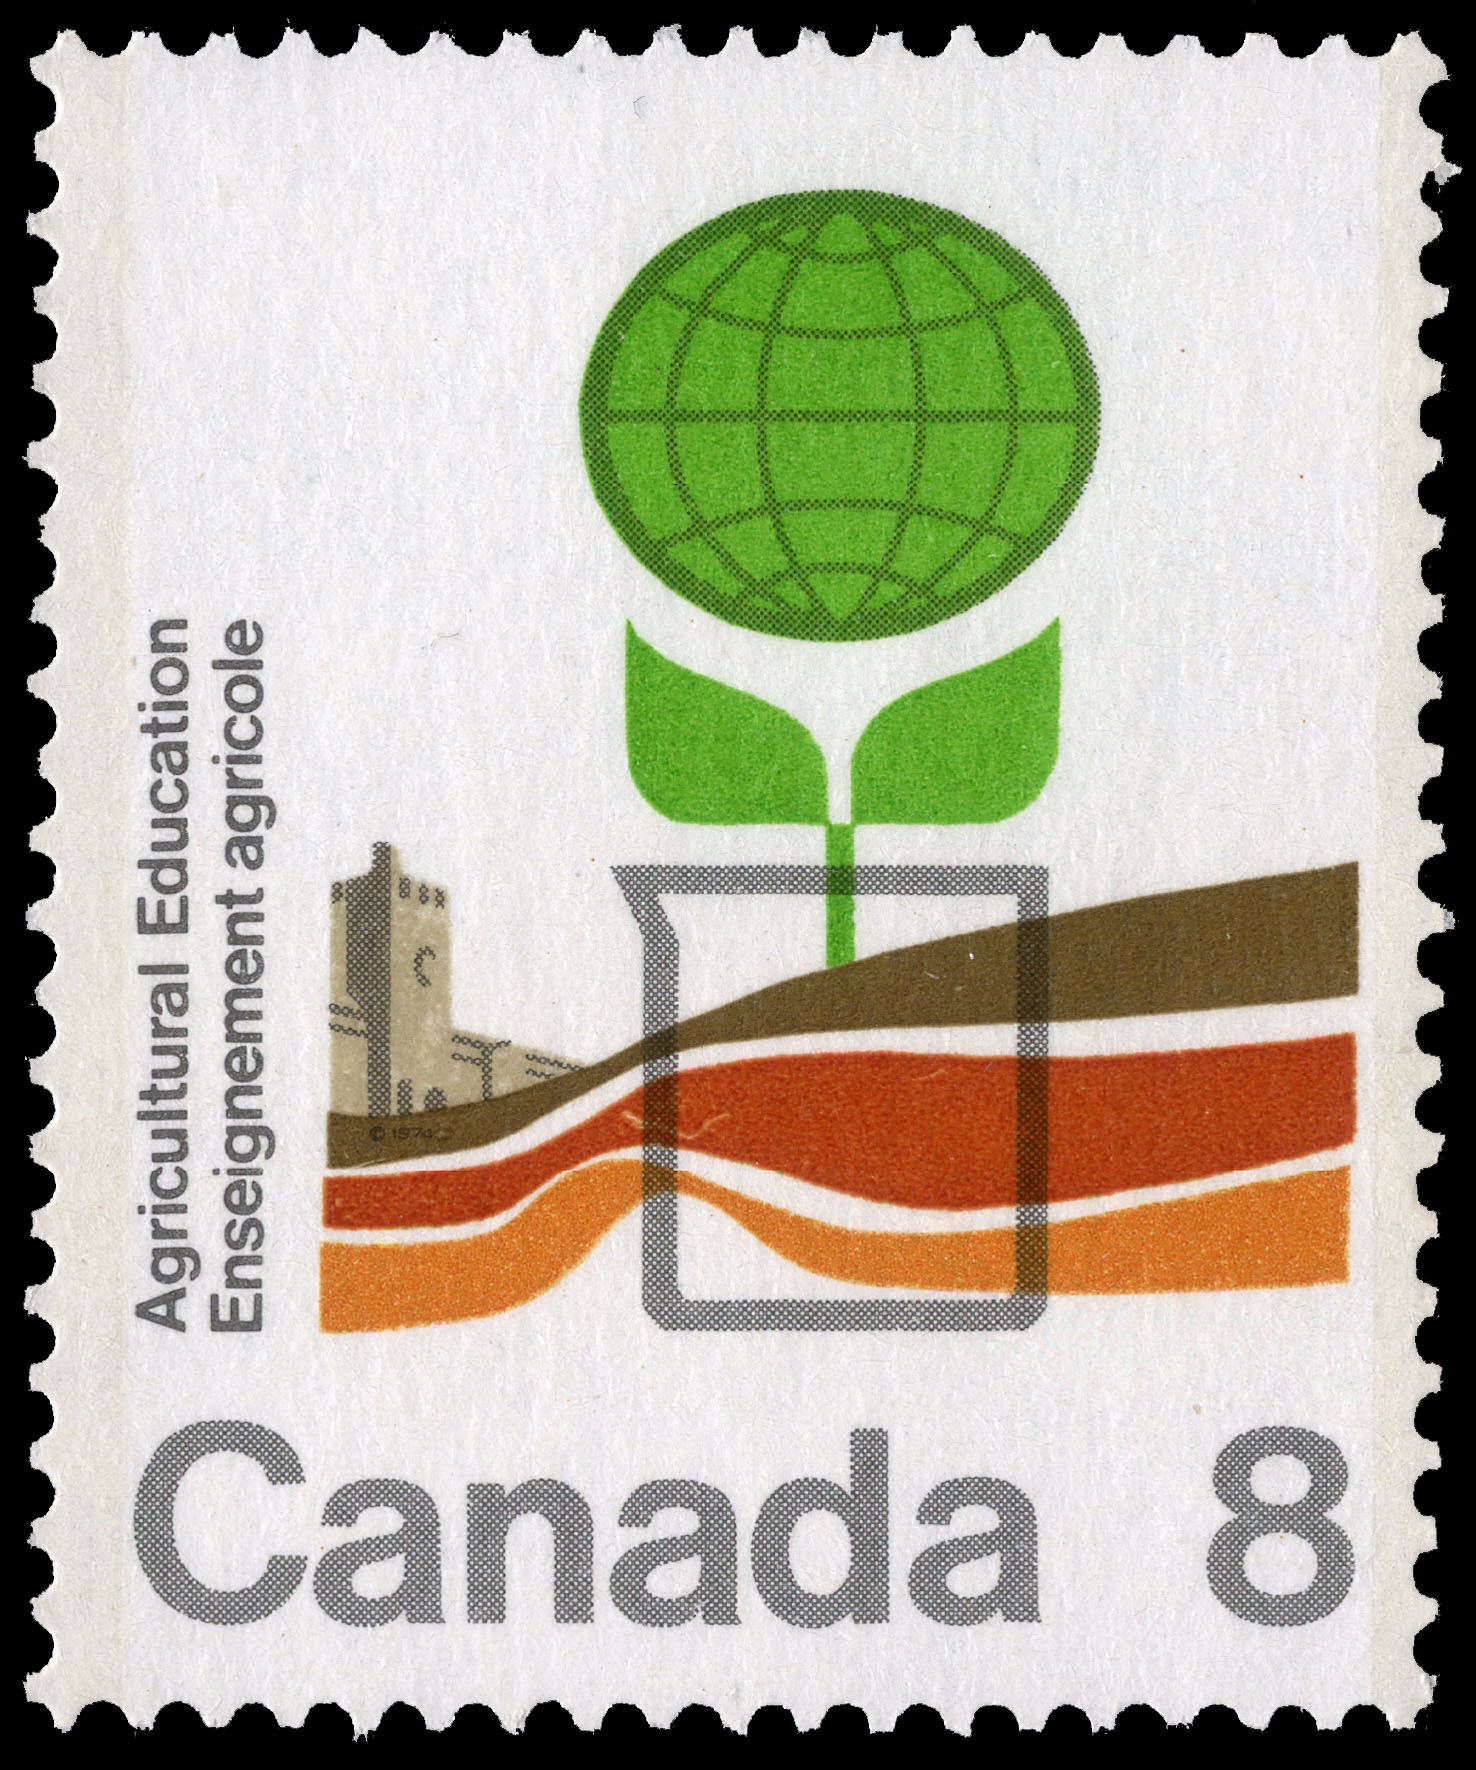 Agricultural Education Canada Postage Stamp